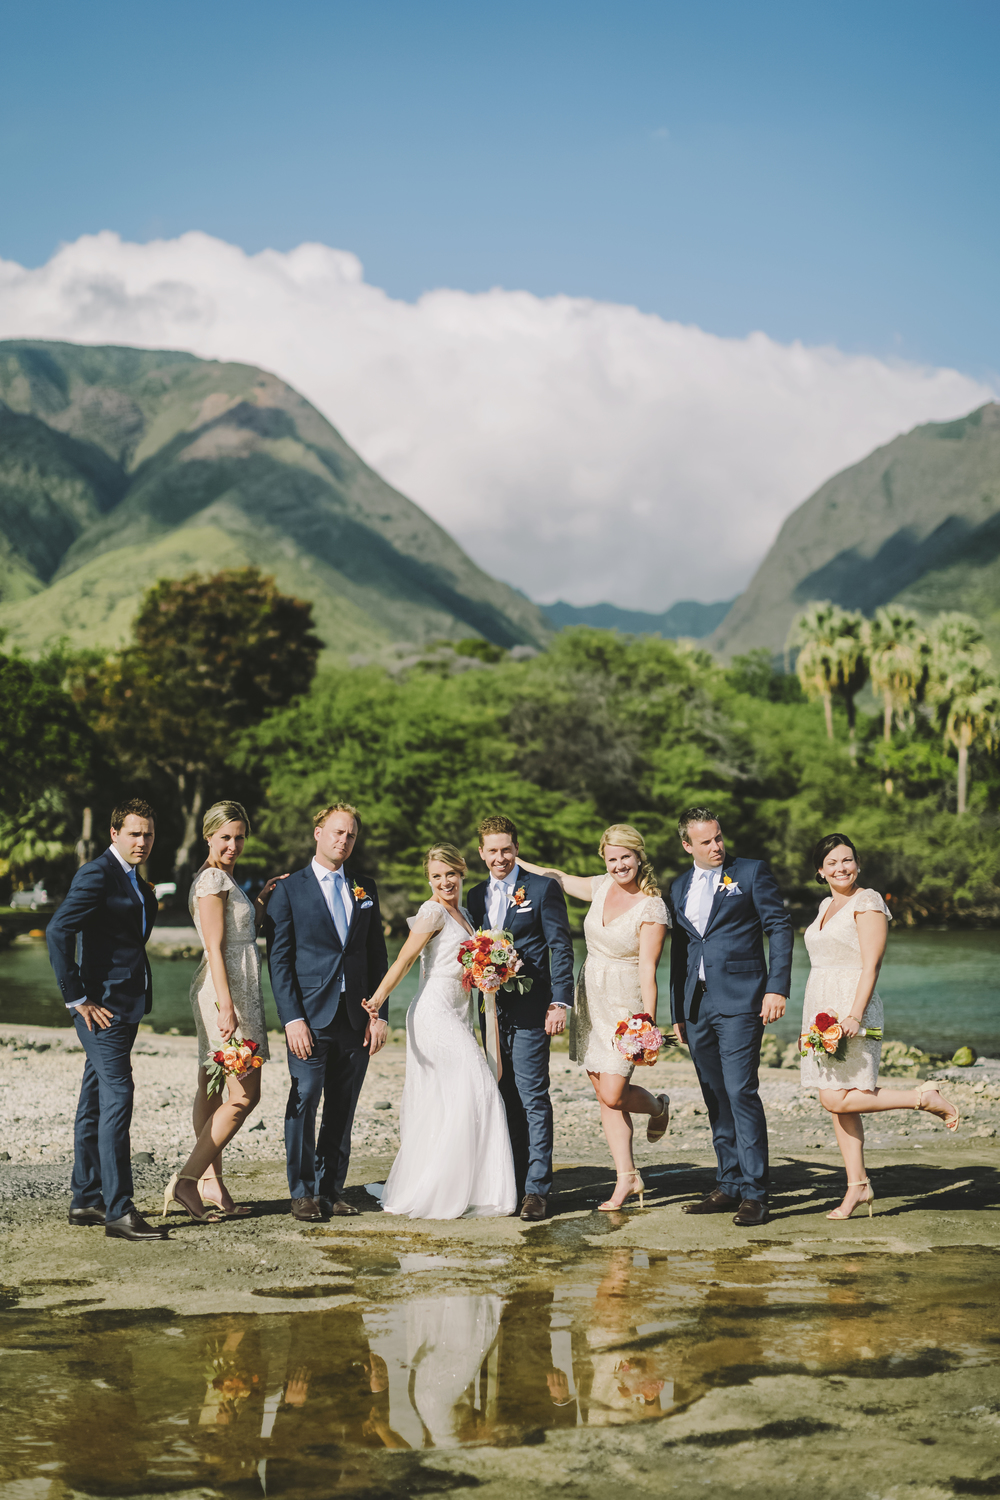 angie-diaz-photography-maui-wedding-mel-matt-56.jpeg